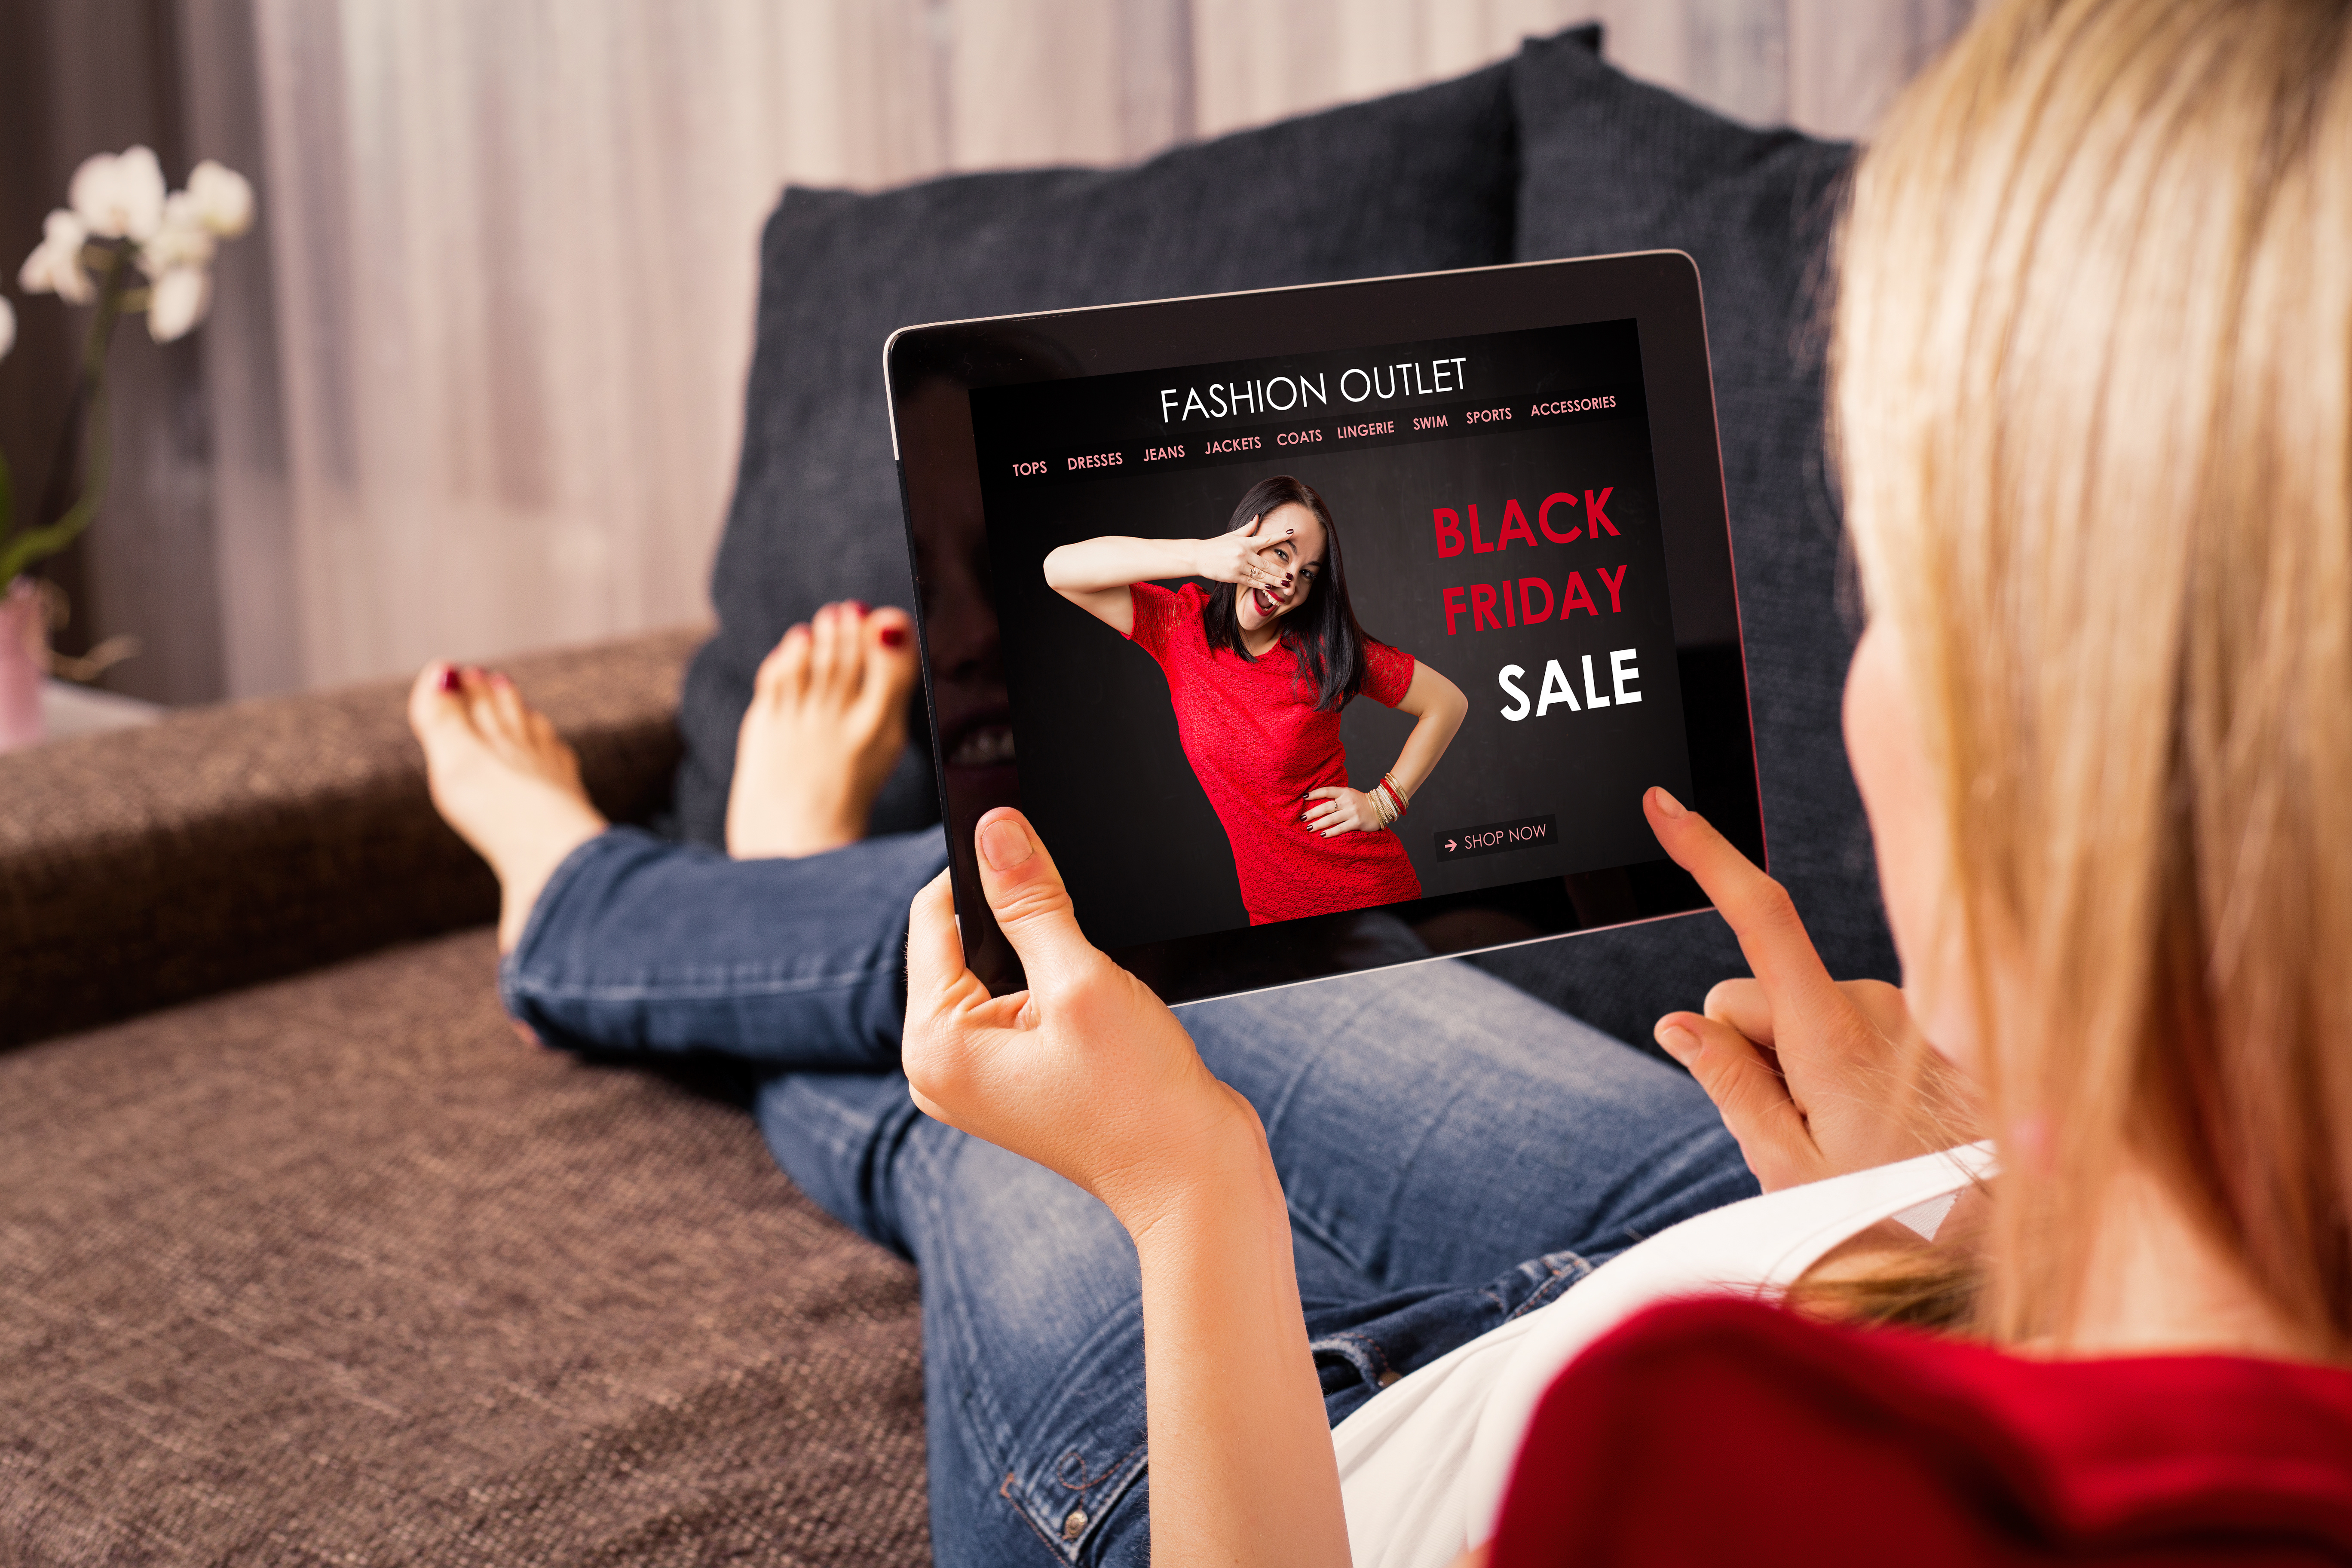 Make sure your business is prepared for Black Friday